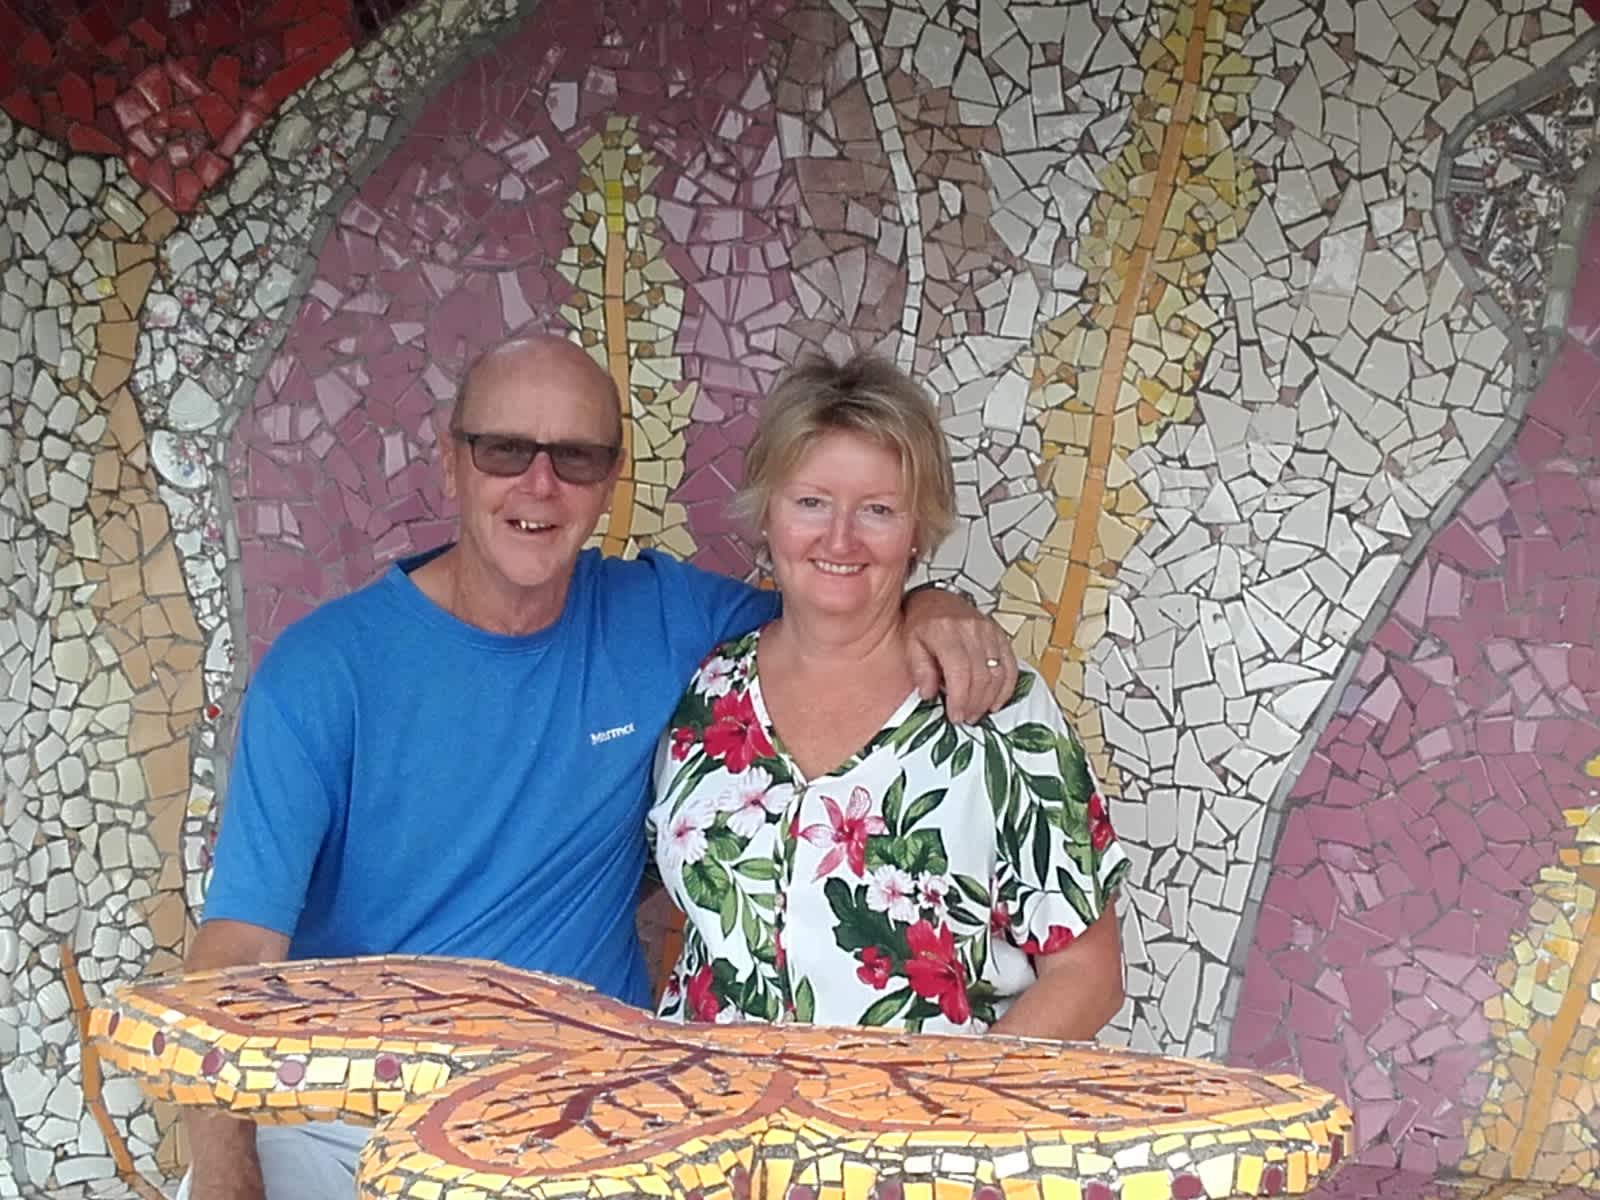 Phil & Clare from Whangamata, New Zealand